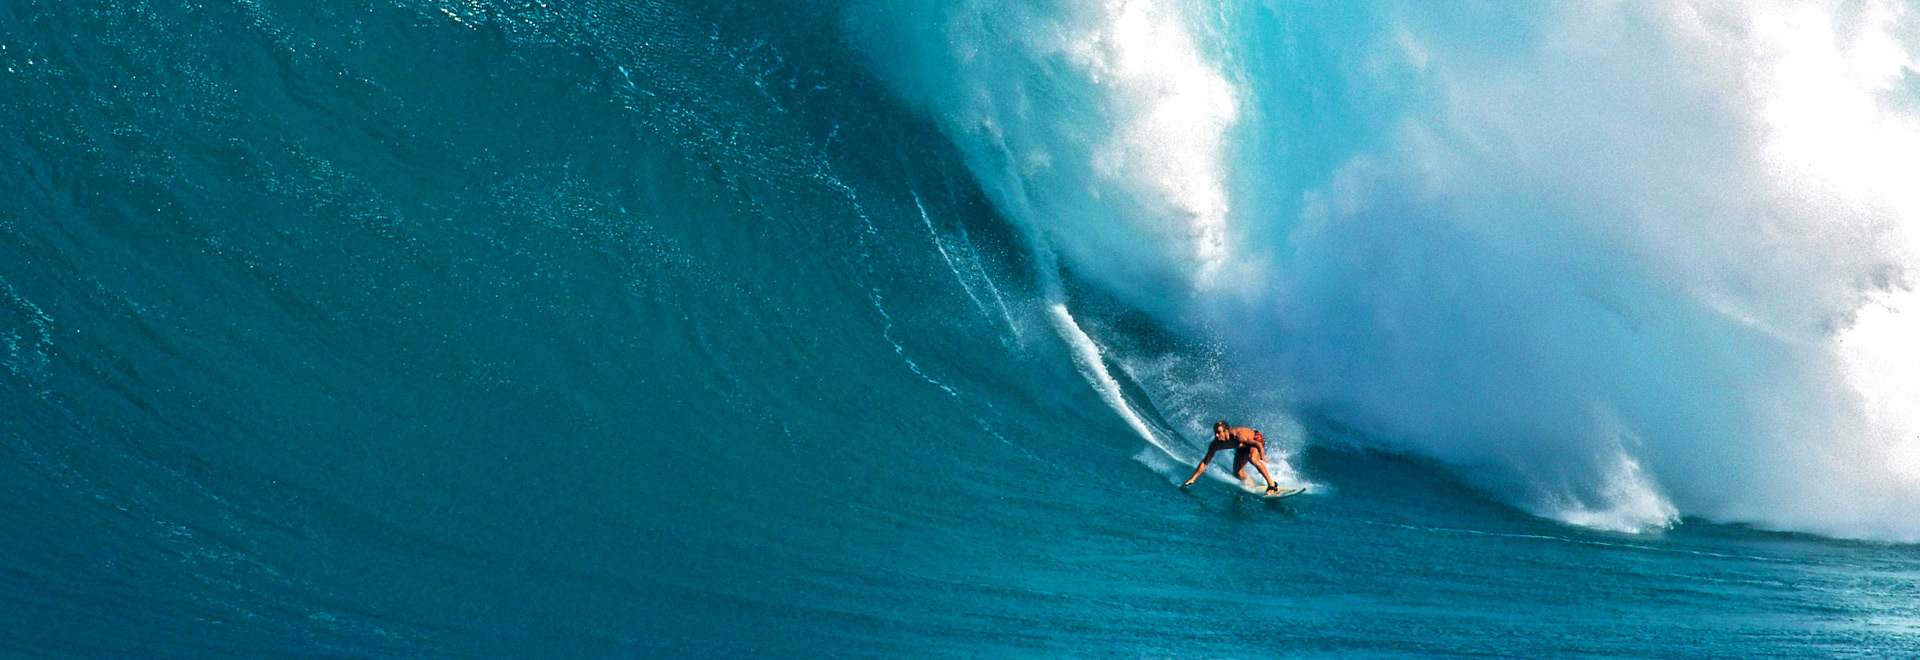 Take Every Wave - A beautifully-filmed skim across the surface